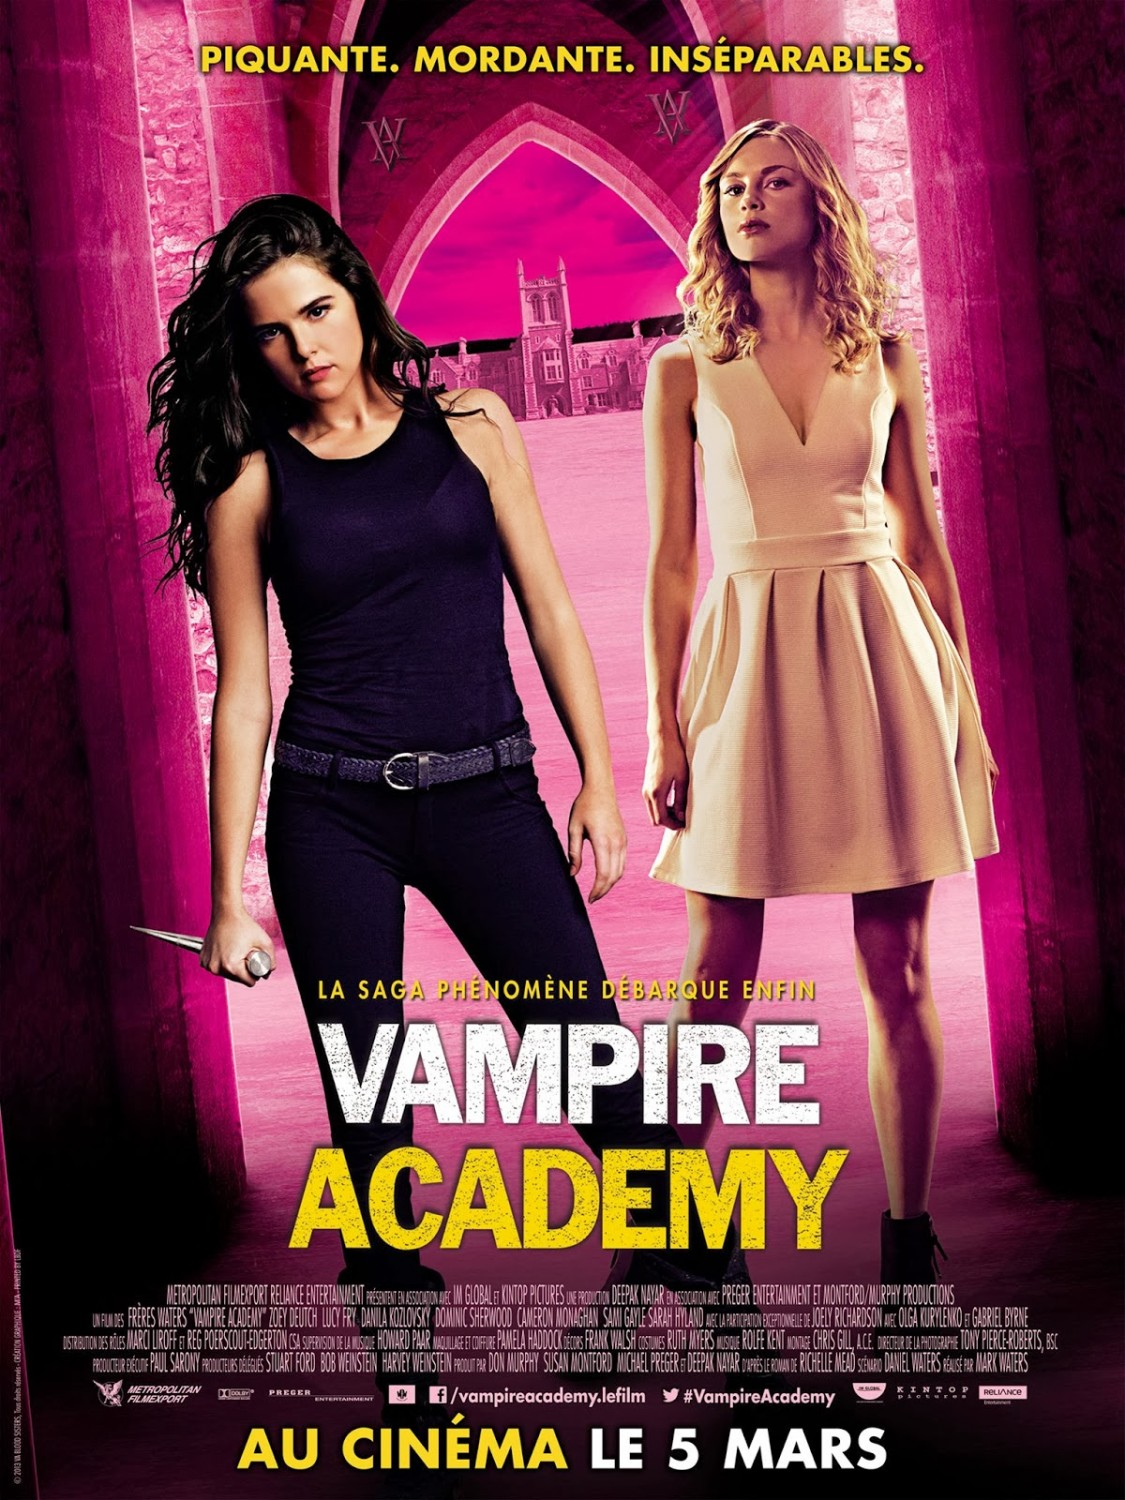 Vampire Academy-Official Poster Banner PROMO XLG INTERNATIONAL-18FEVEREIRO2014-01